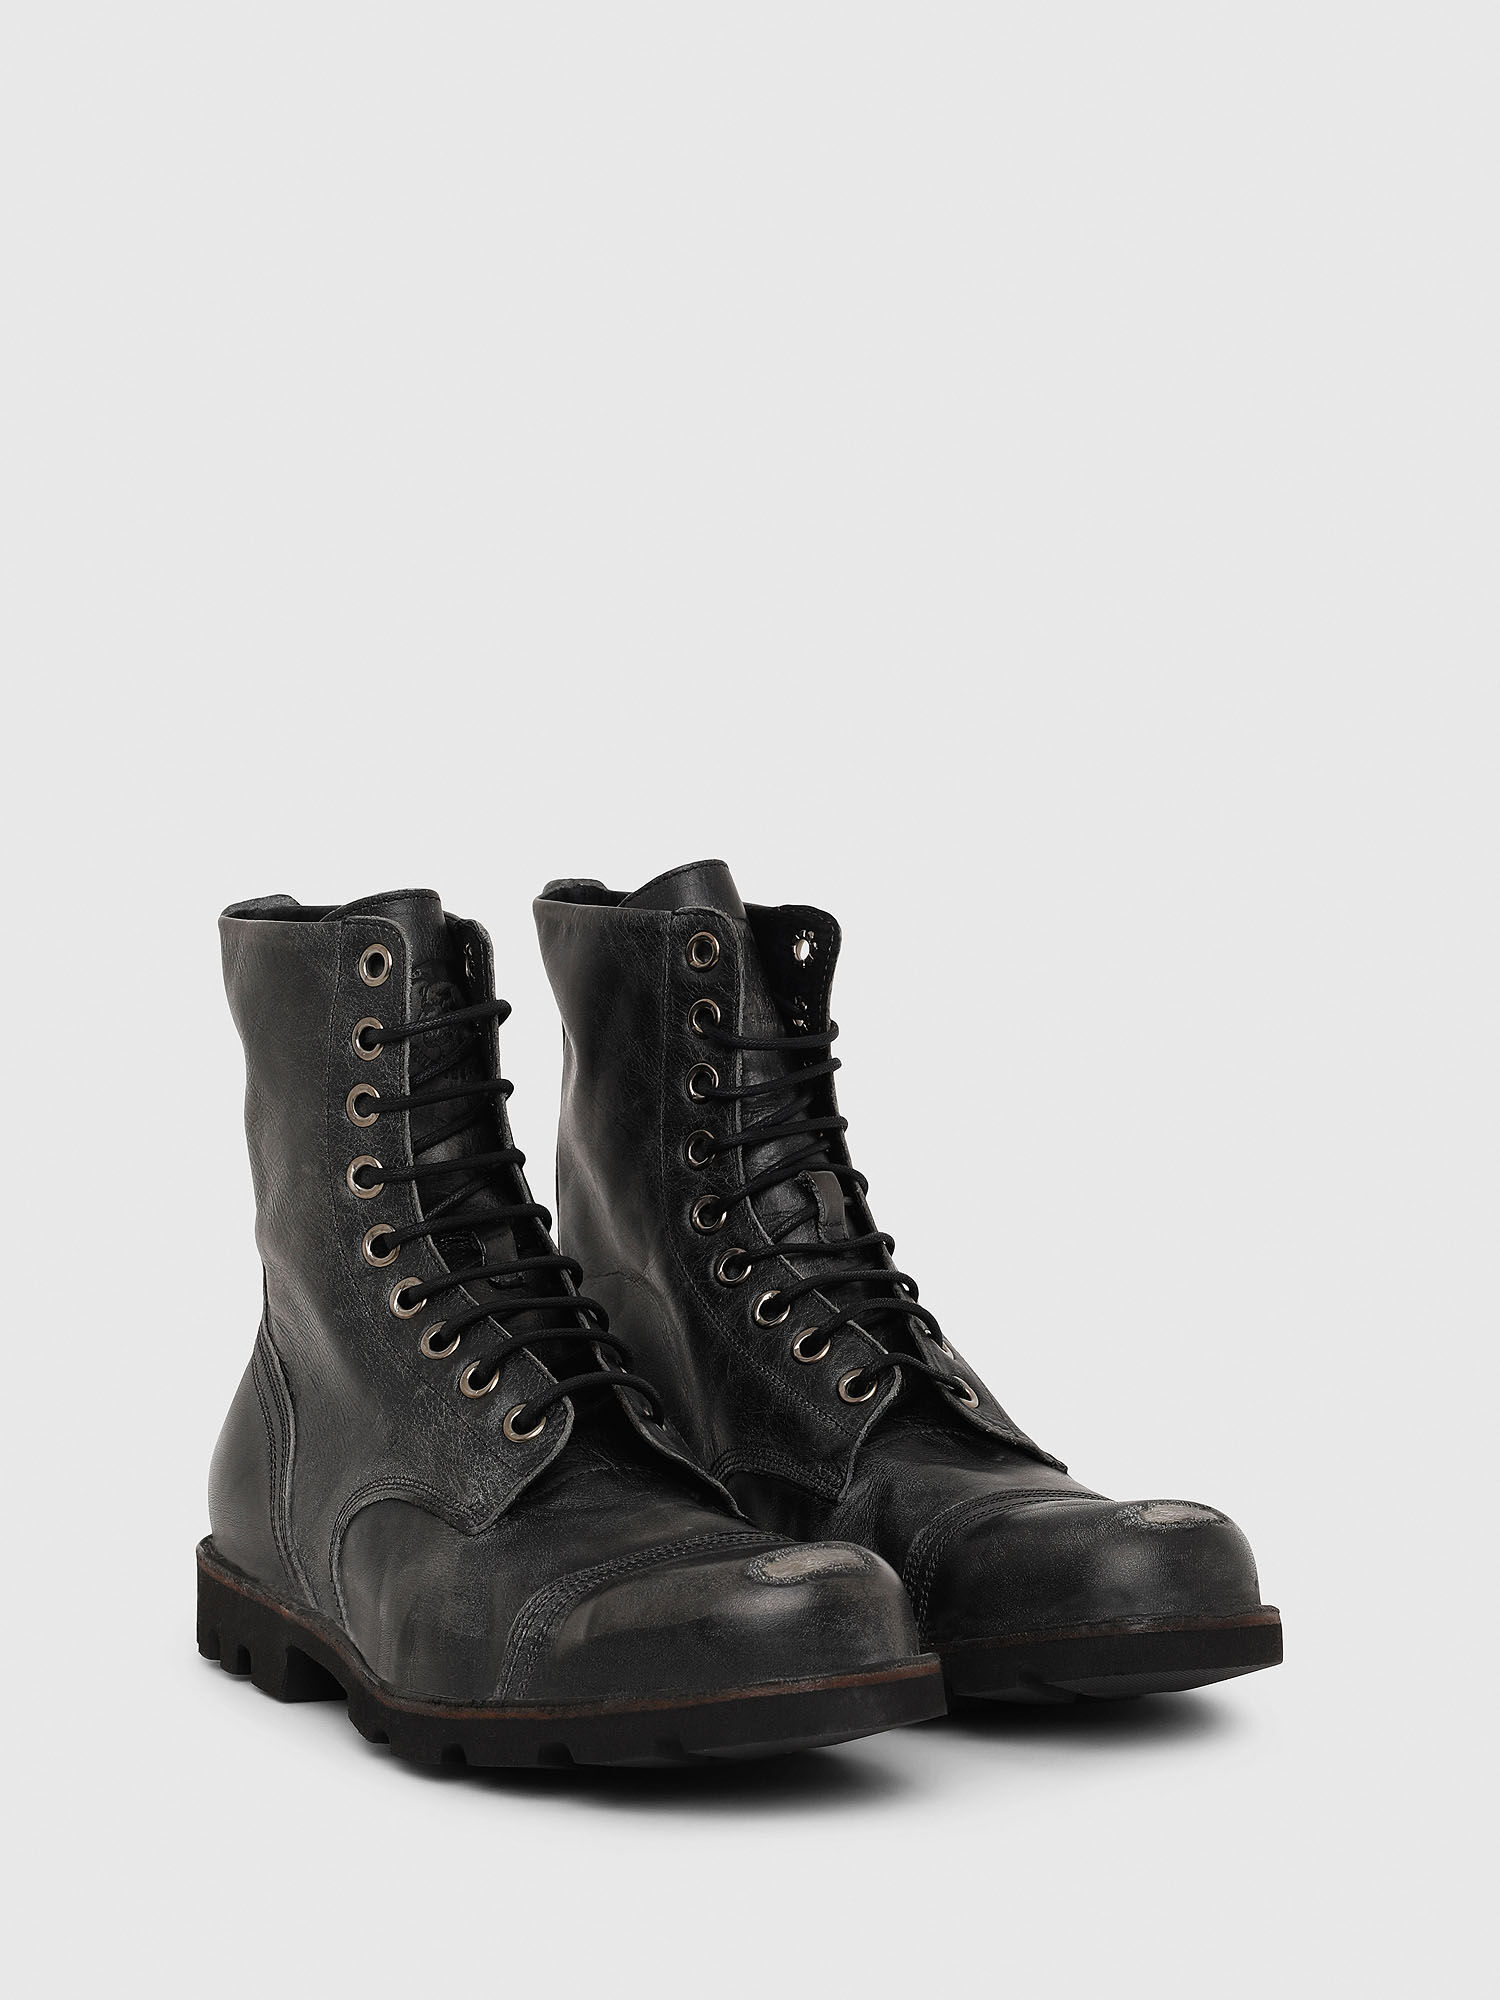 HARDKOR Men: Boots in sturdy treated